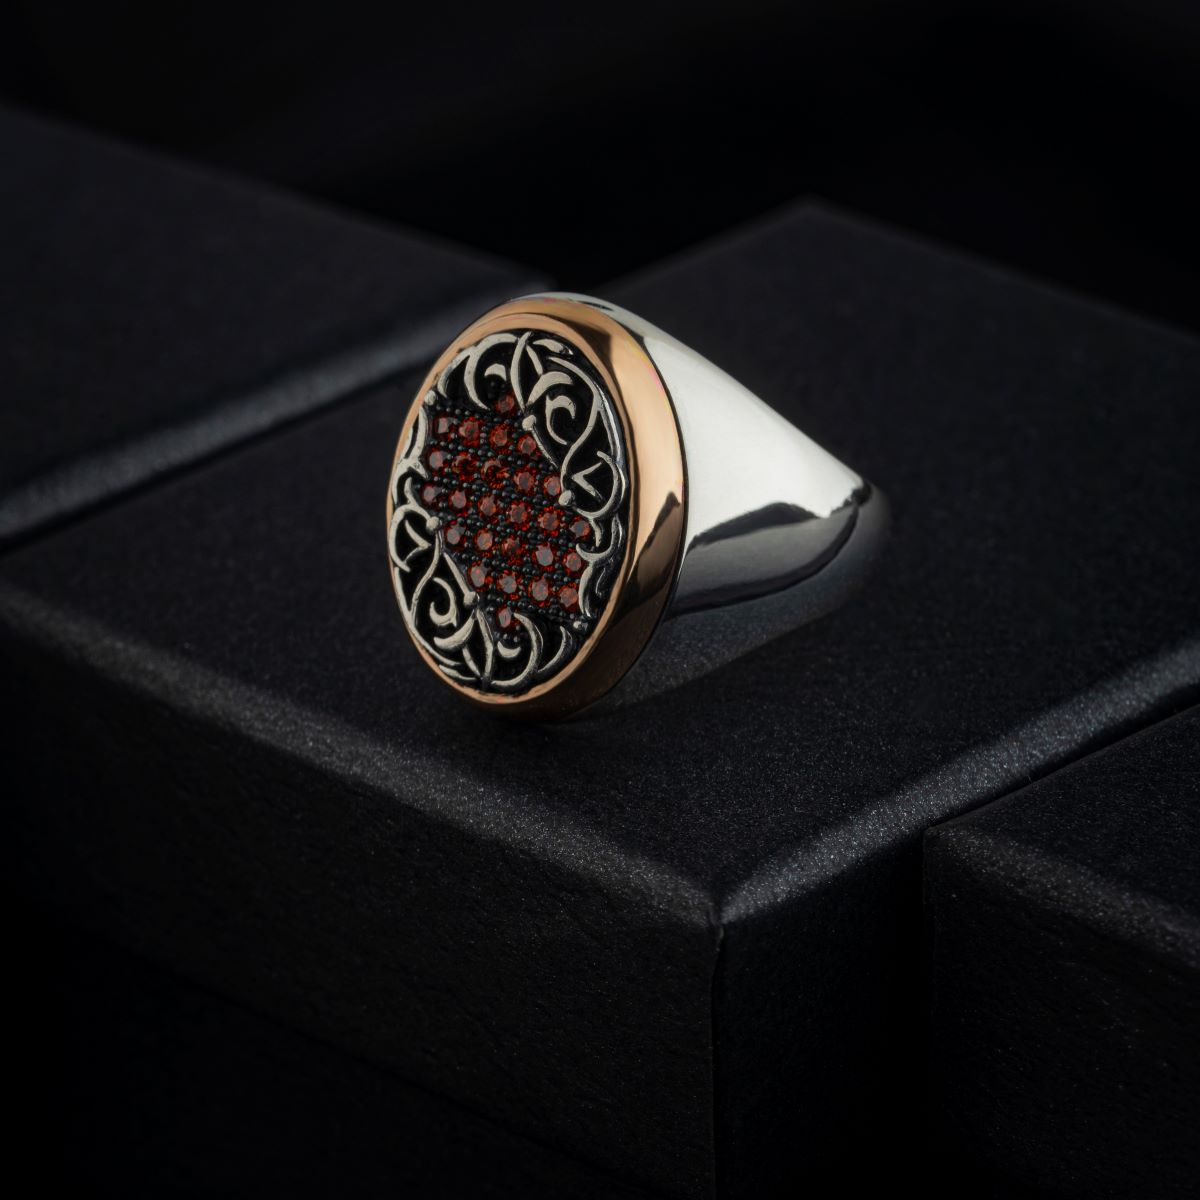 for men High-quality 925 Sterling Silver mını Zircon stone patterned ring Jewelry Made in Turkey in a luxurious way  with gift